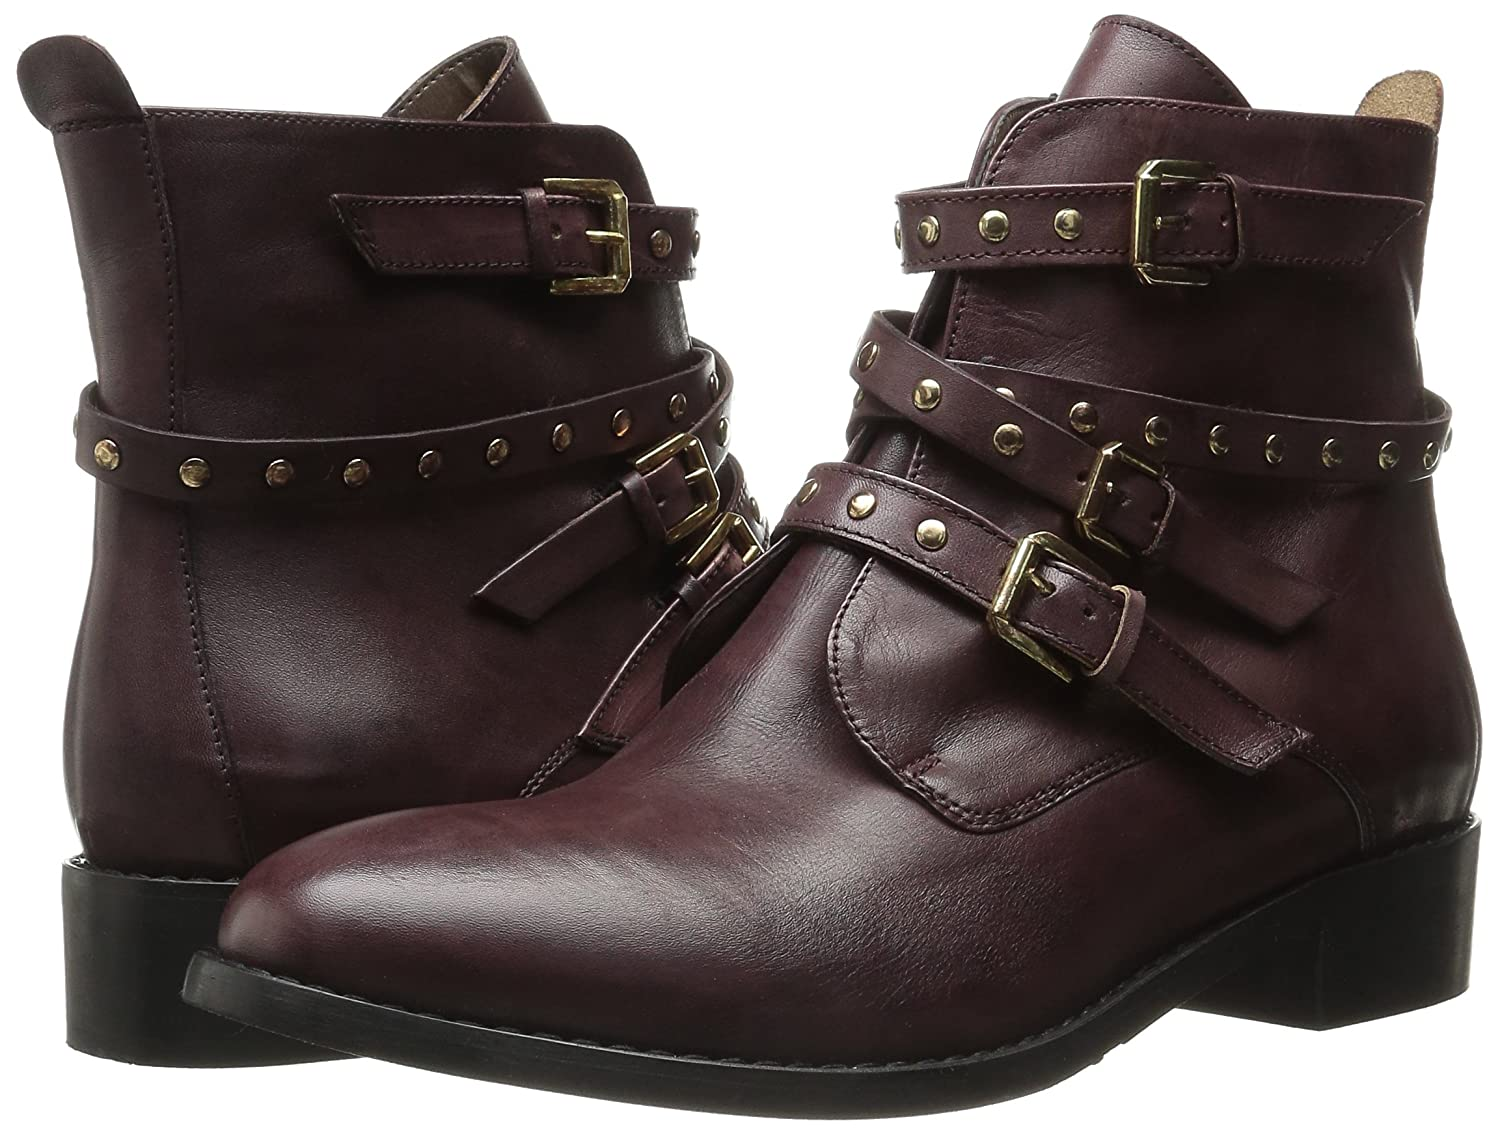 Bella B00U8012QS Vita Women's Mod Italy Boot B00U8012QS Bella 6.5 W US|Burgundy Leather 9b35ec